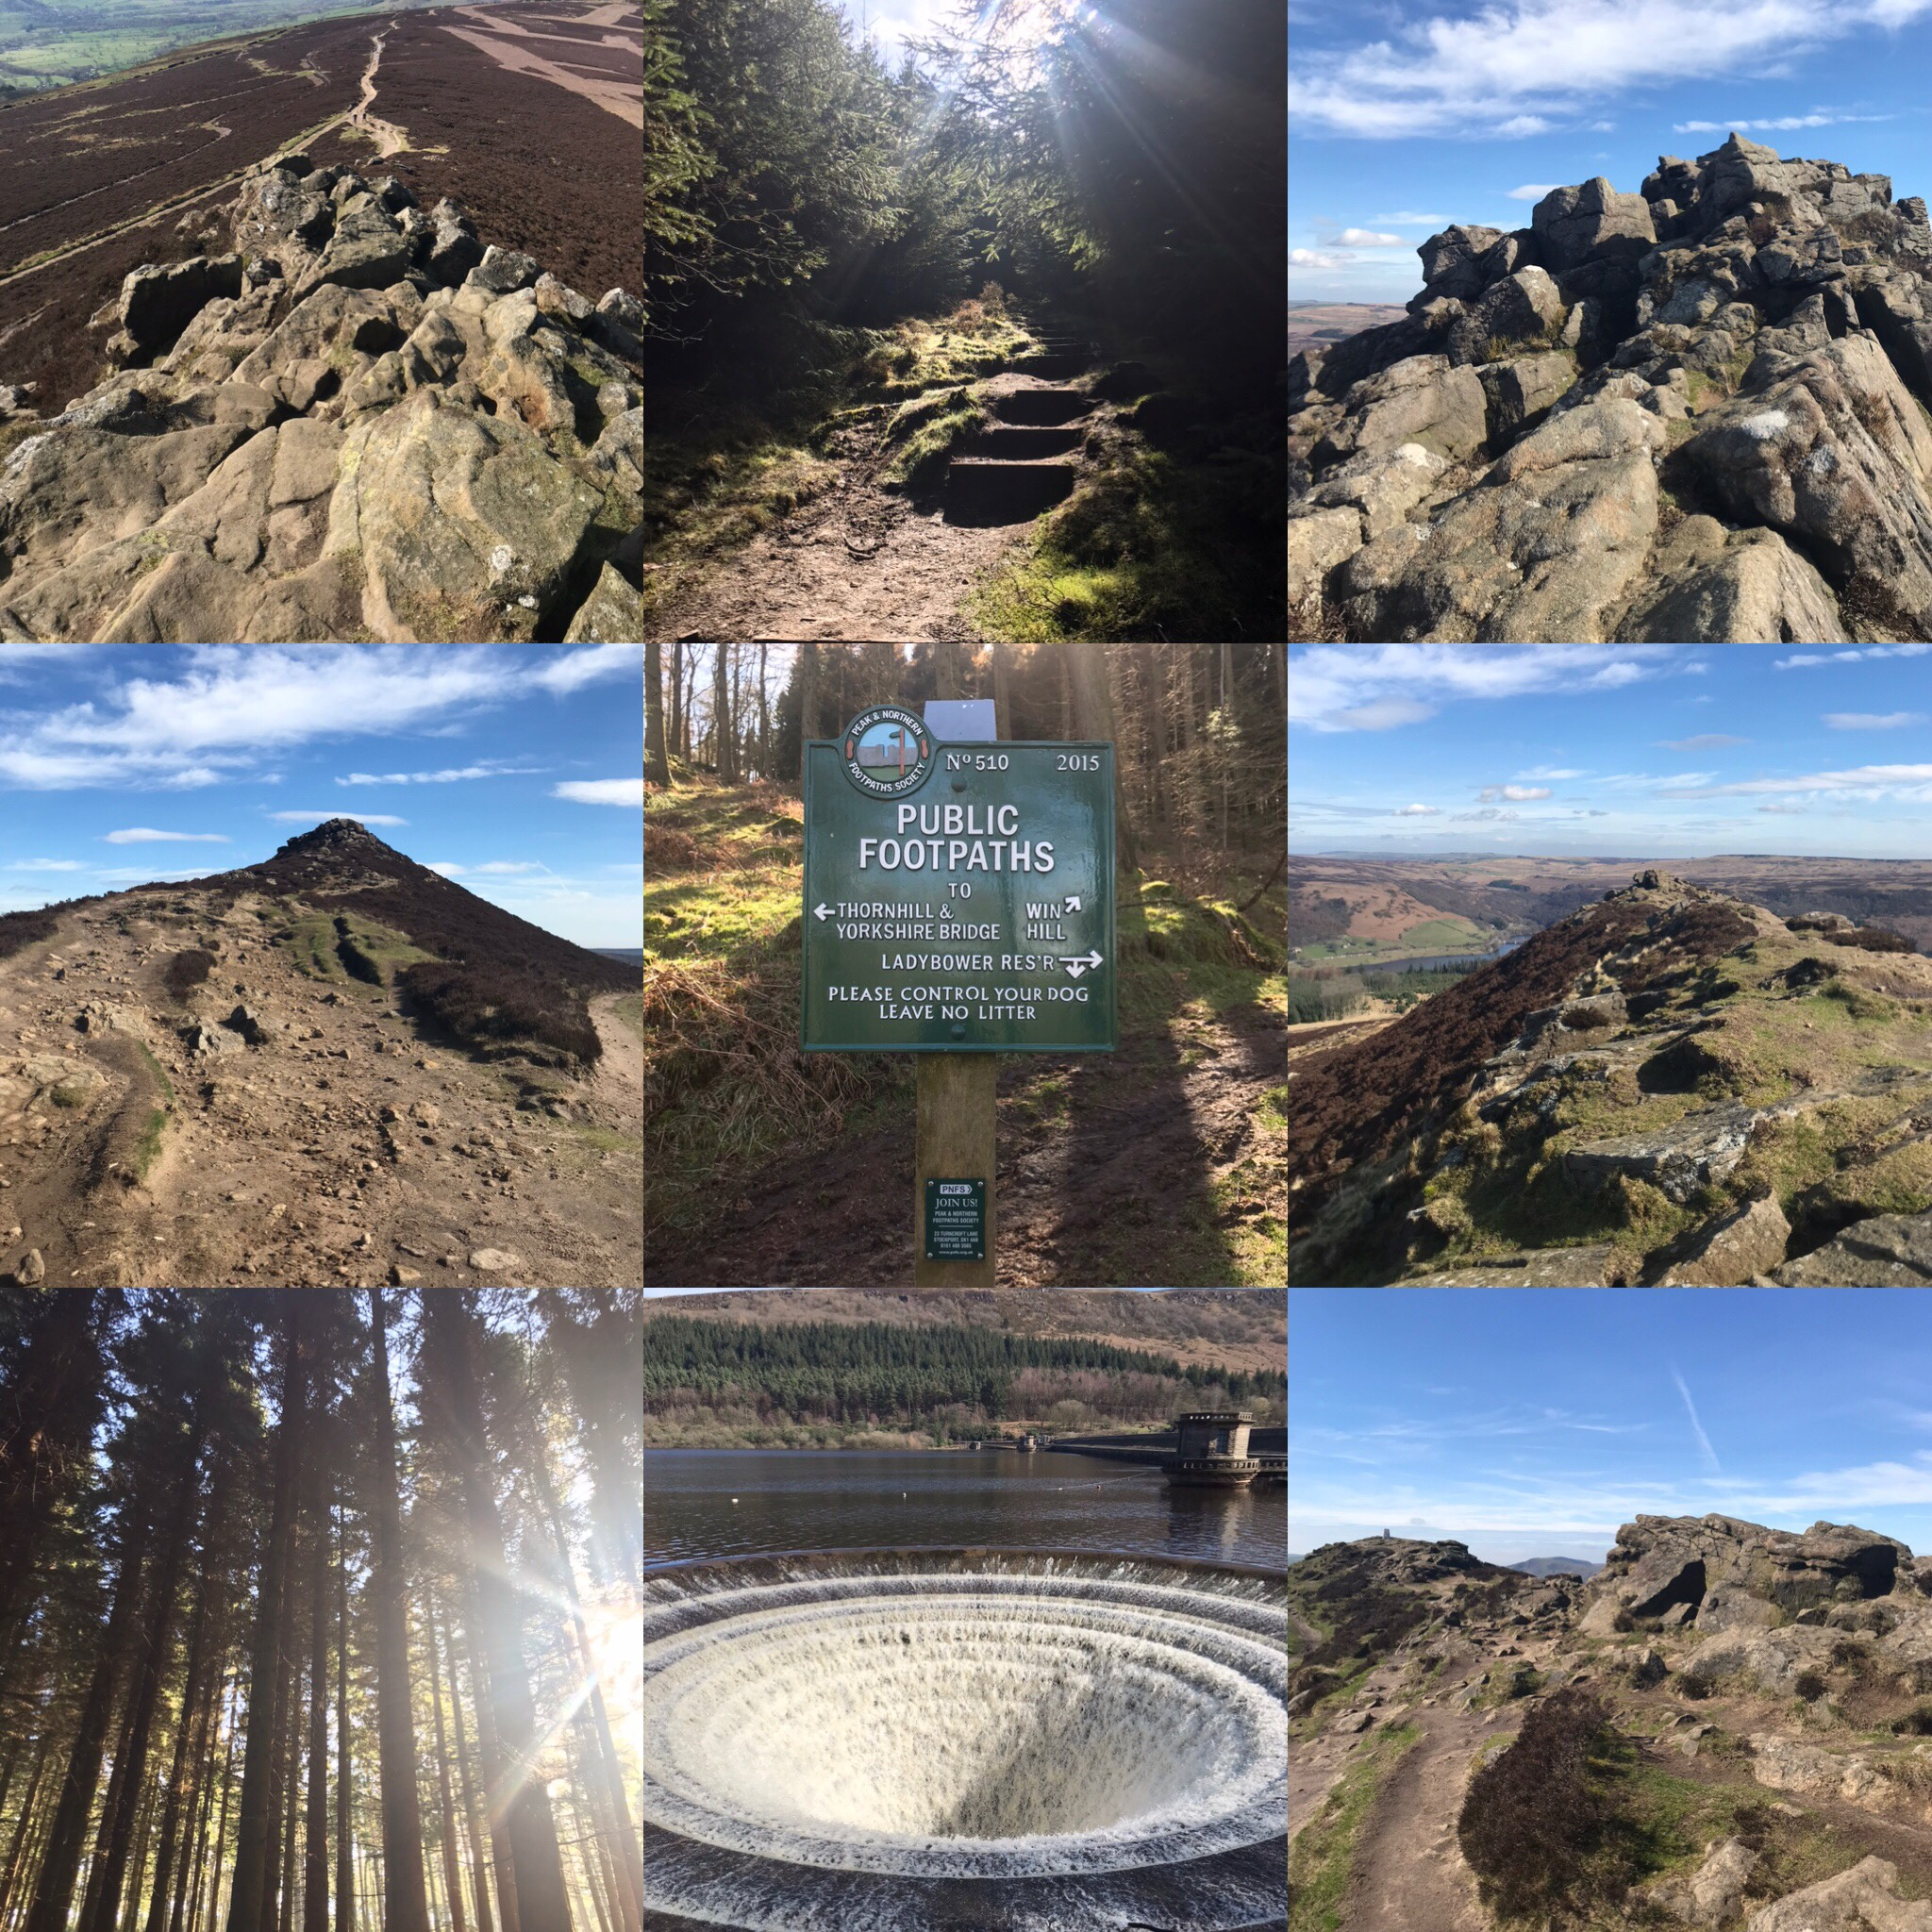 Photos from my Ladybower to Win Hill Peak District walk